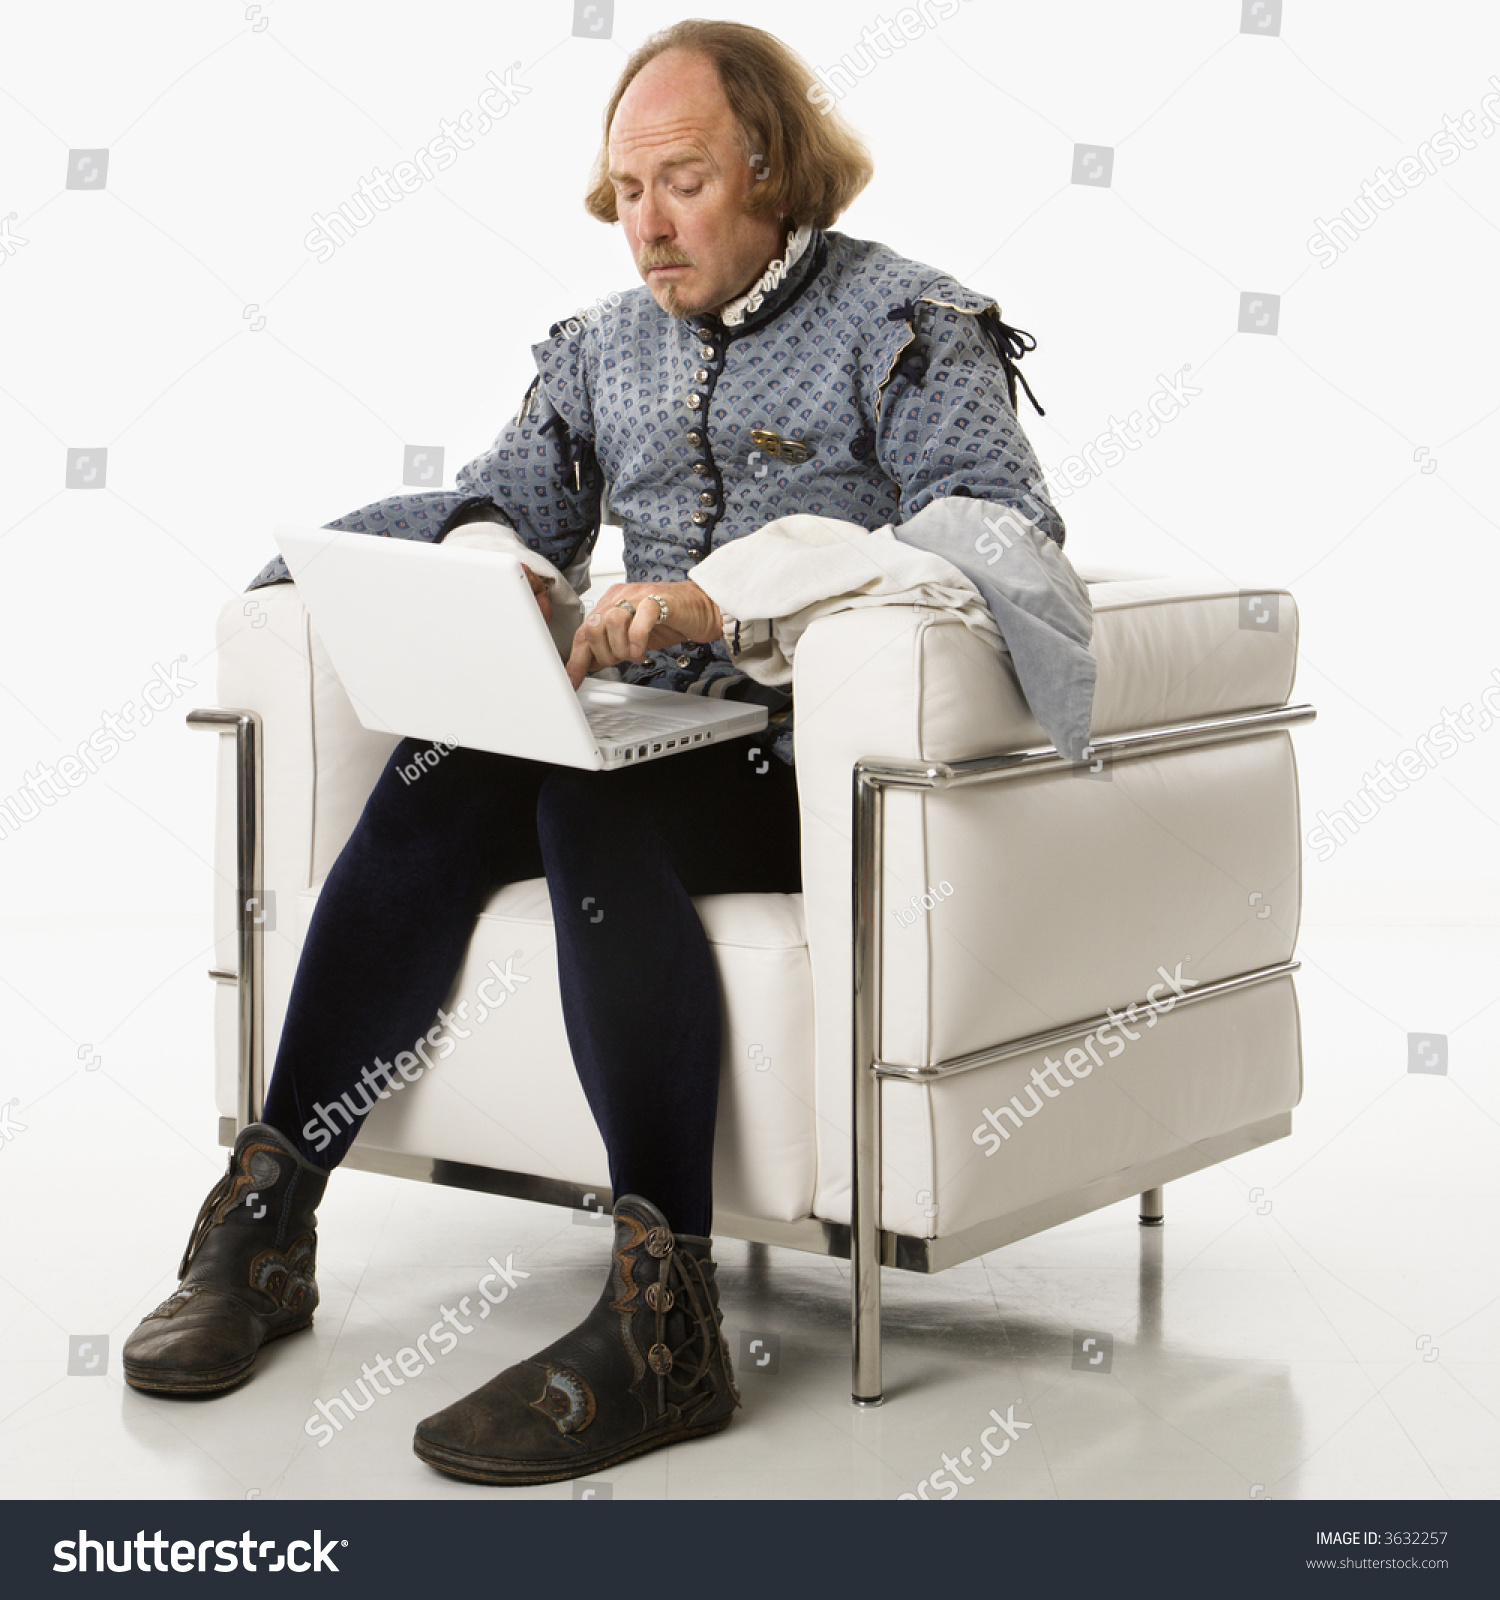 william shakespeare period clothing sitting on stock photo  william shakespeare in period clothing sitting on modern chair using laptop